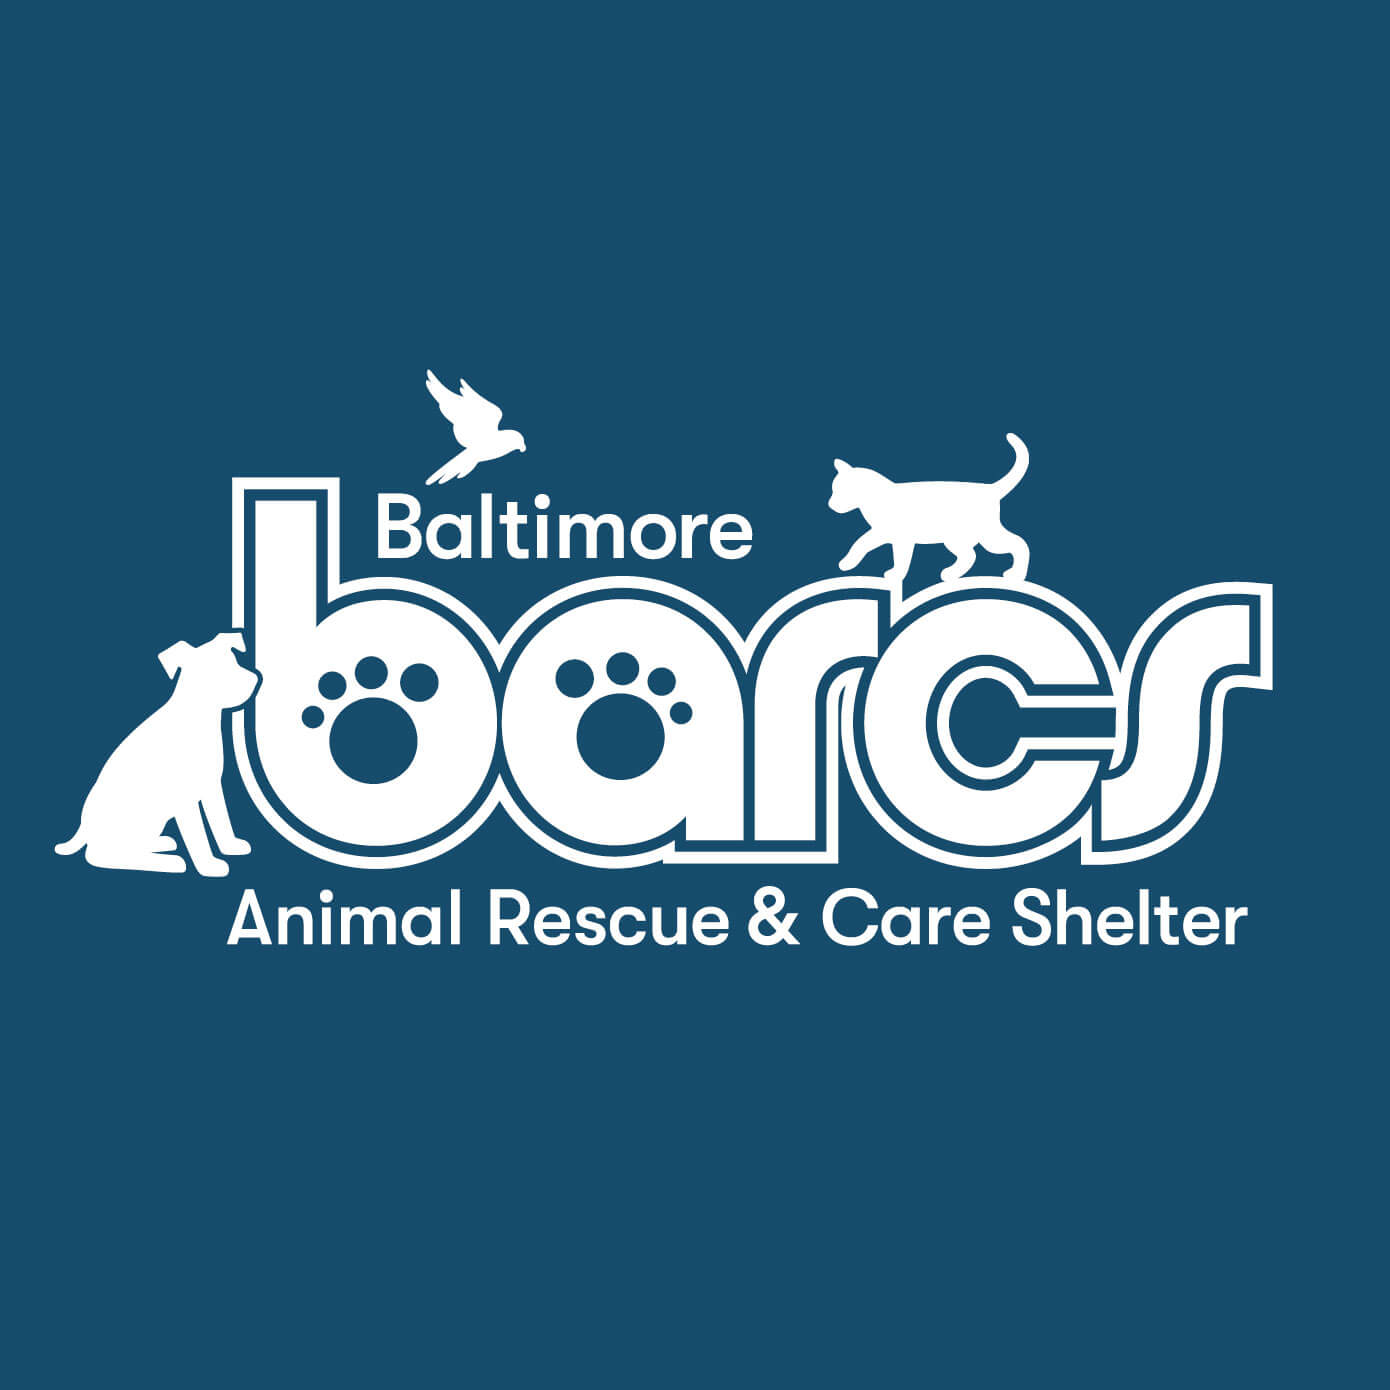 BARCS - Baltimore Animal Rescue & Care Shelter Logo